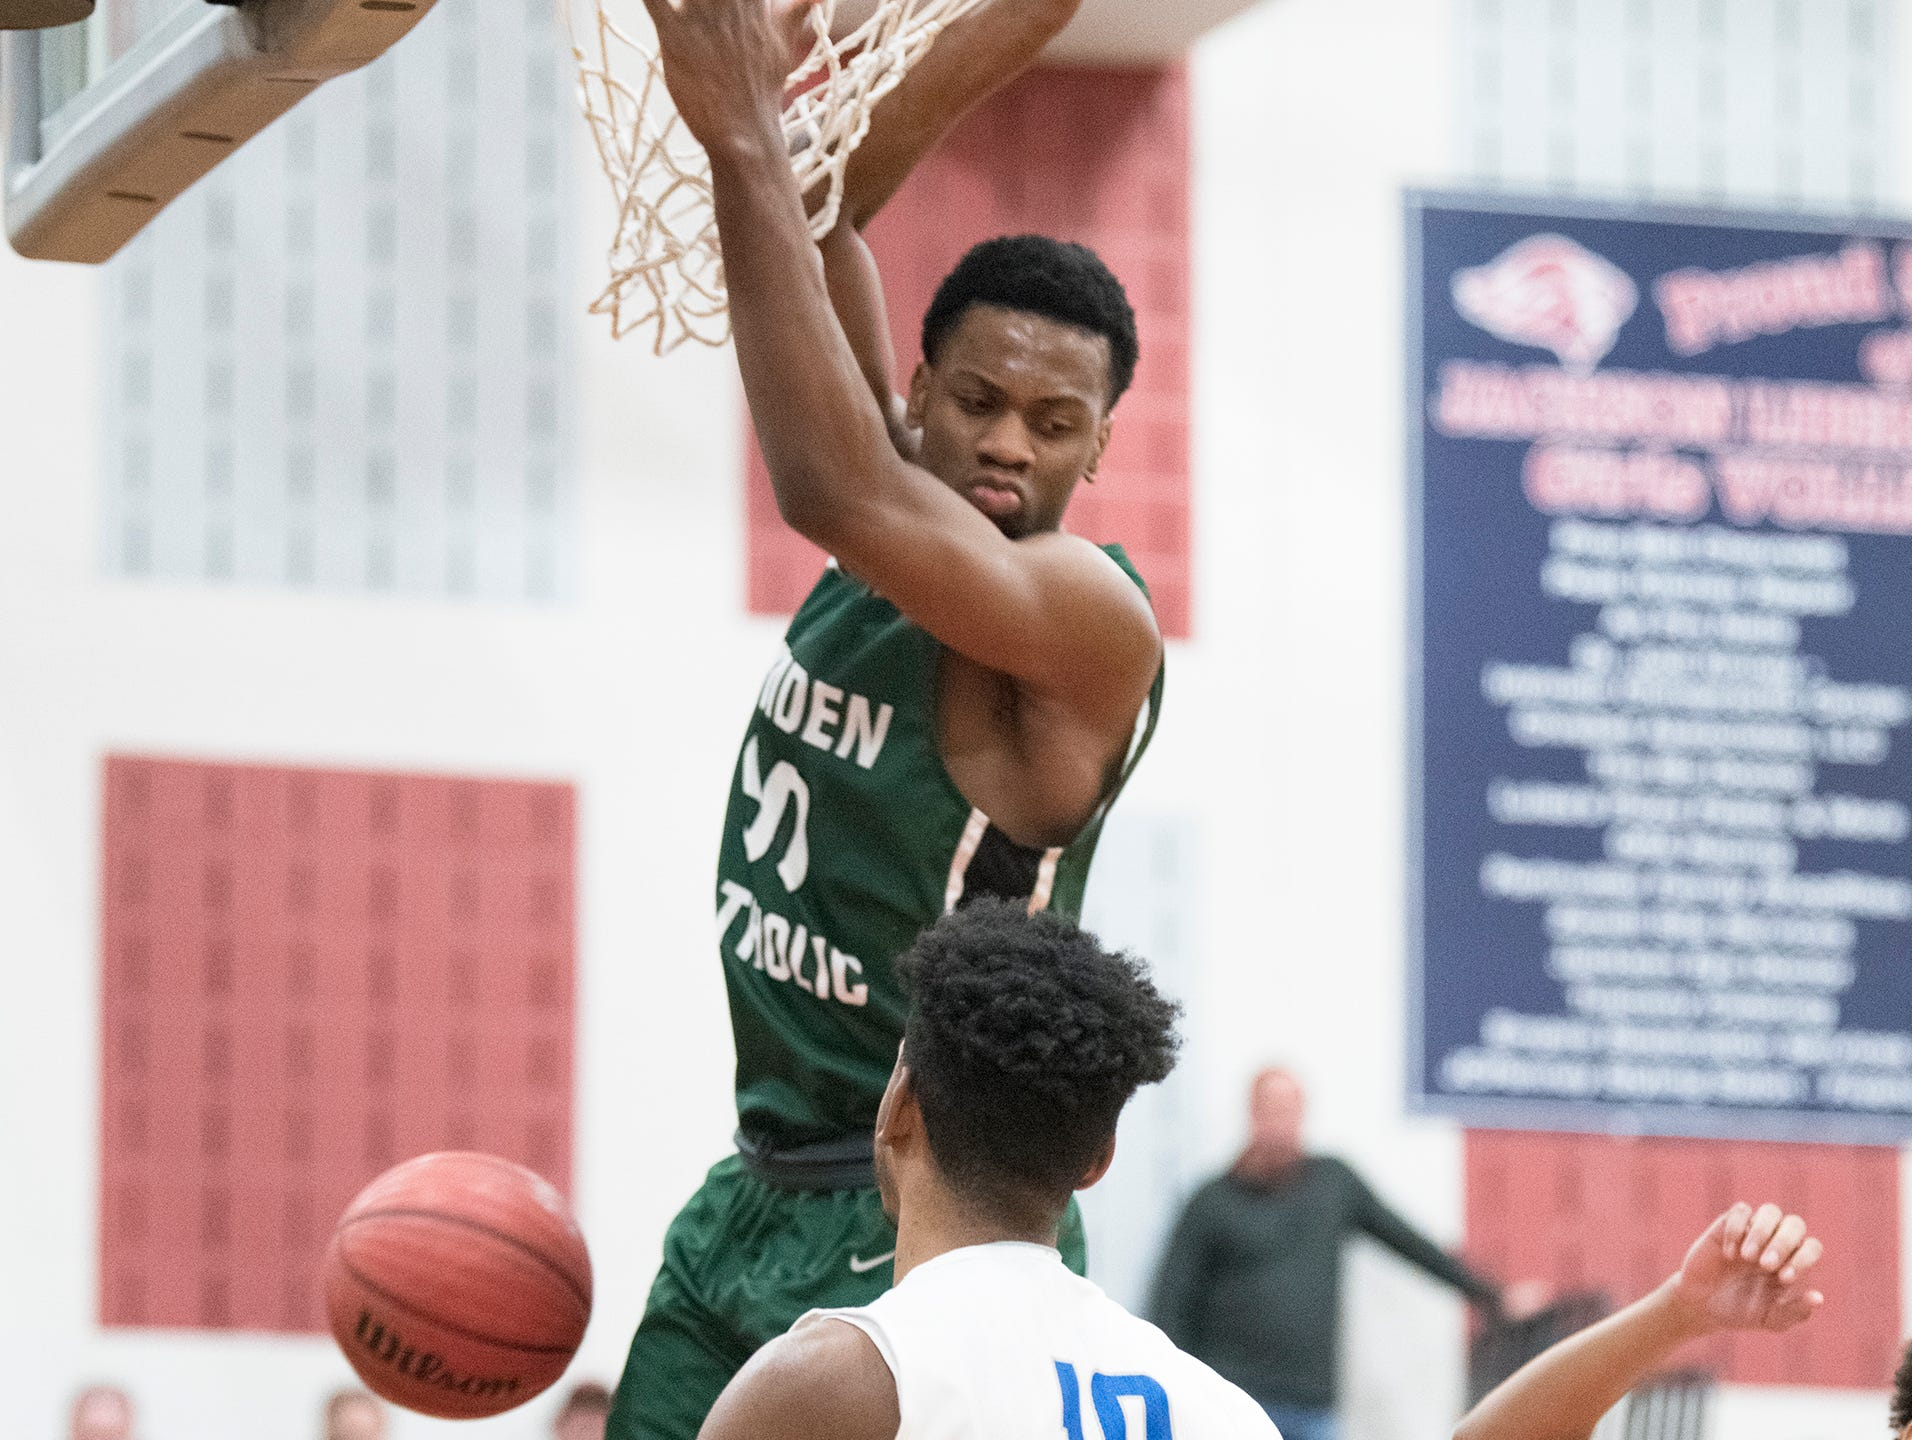 Camden Catholic's Uche Okafor dunks over Paul VI's Jordany Pierre during the Non-Public A South boys basketball final played at Jackson Liberty High School on Tuesday, March 5, 2019.